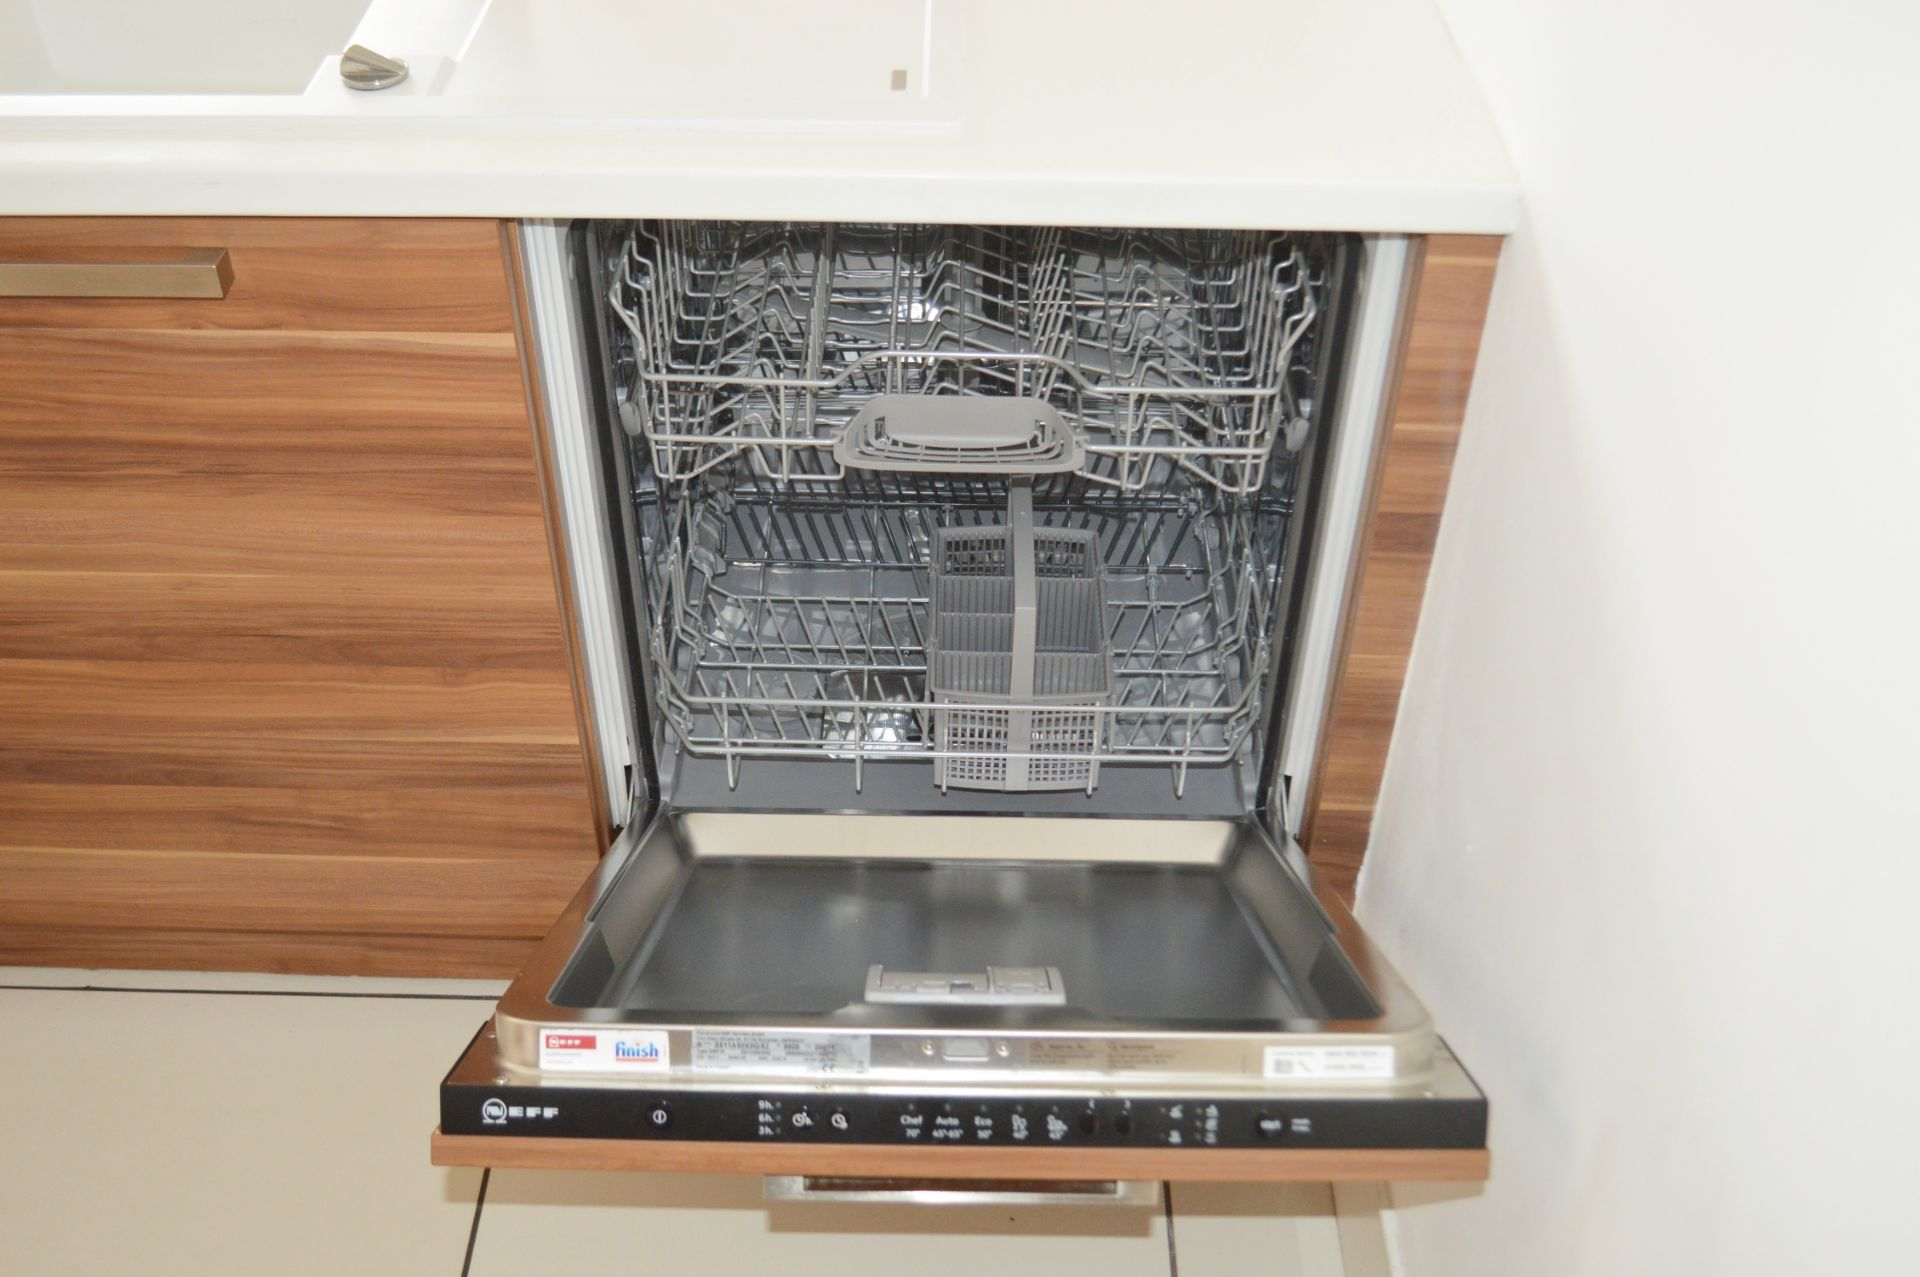 1 x Contemporary Bespoke Fitted Kitchen With Integrated Neff Branded Appliances, Quartz Worktops - Image 38 of 52